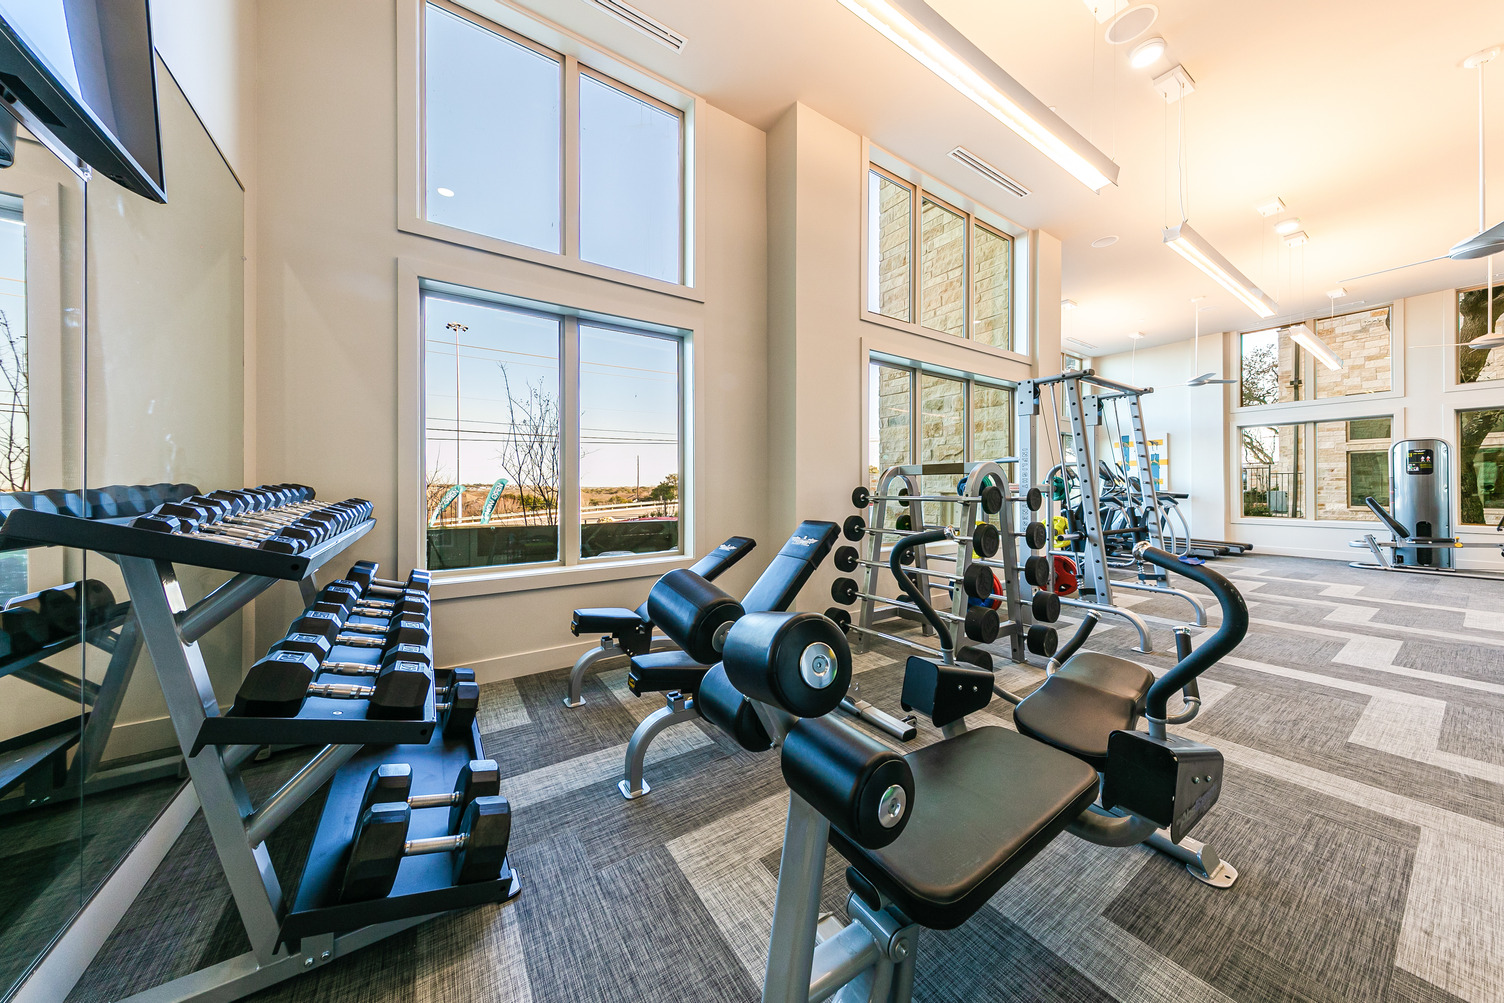 Strength training equipment and free weights in community fitness center